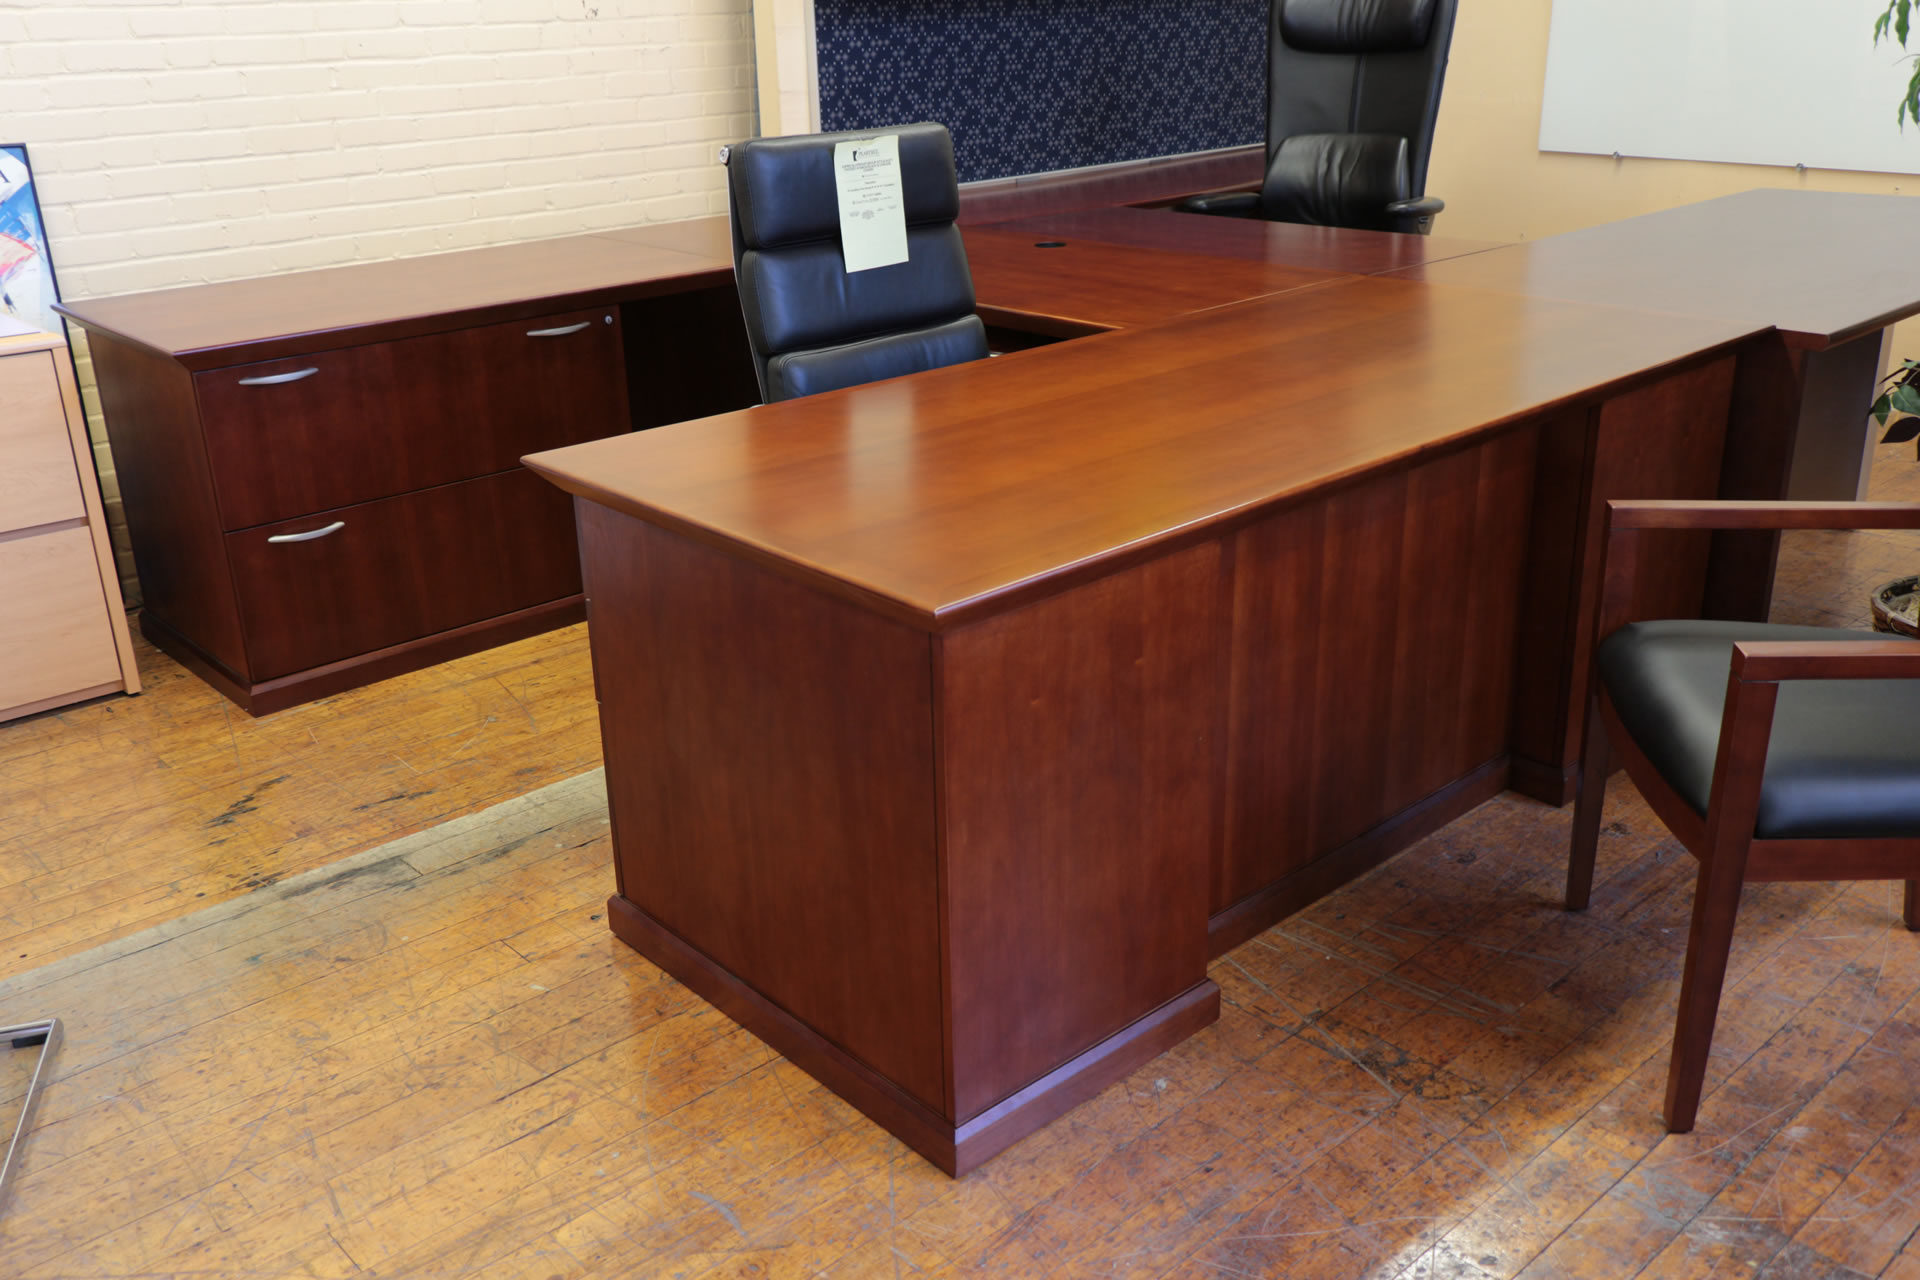 peartreeofficefurniture_peartreeofficefurniture_peartreeofficefurniture_img_9426.jpg